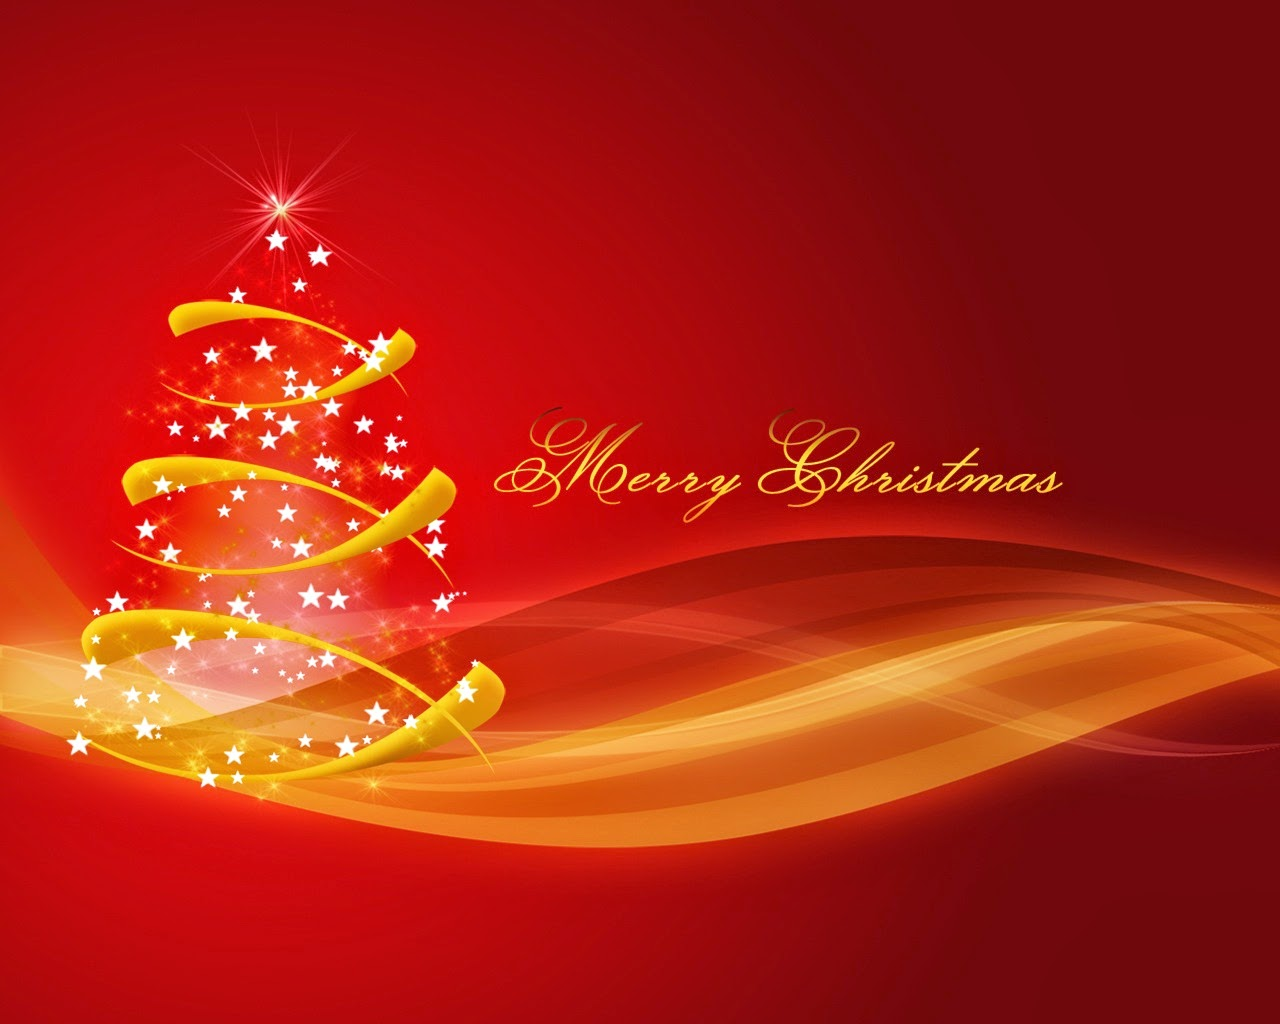 Merry Christmas, Happy Holidays, Christmas, Joy, love, fun, Christmas season, logo, happy, Season Greetings